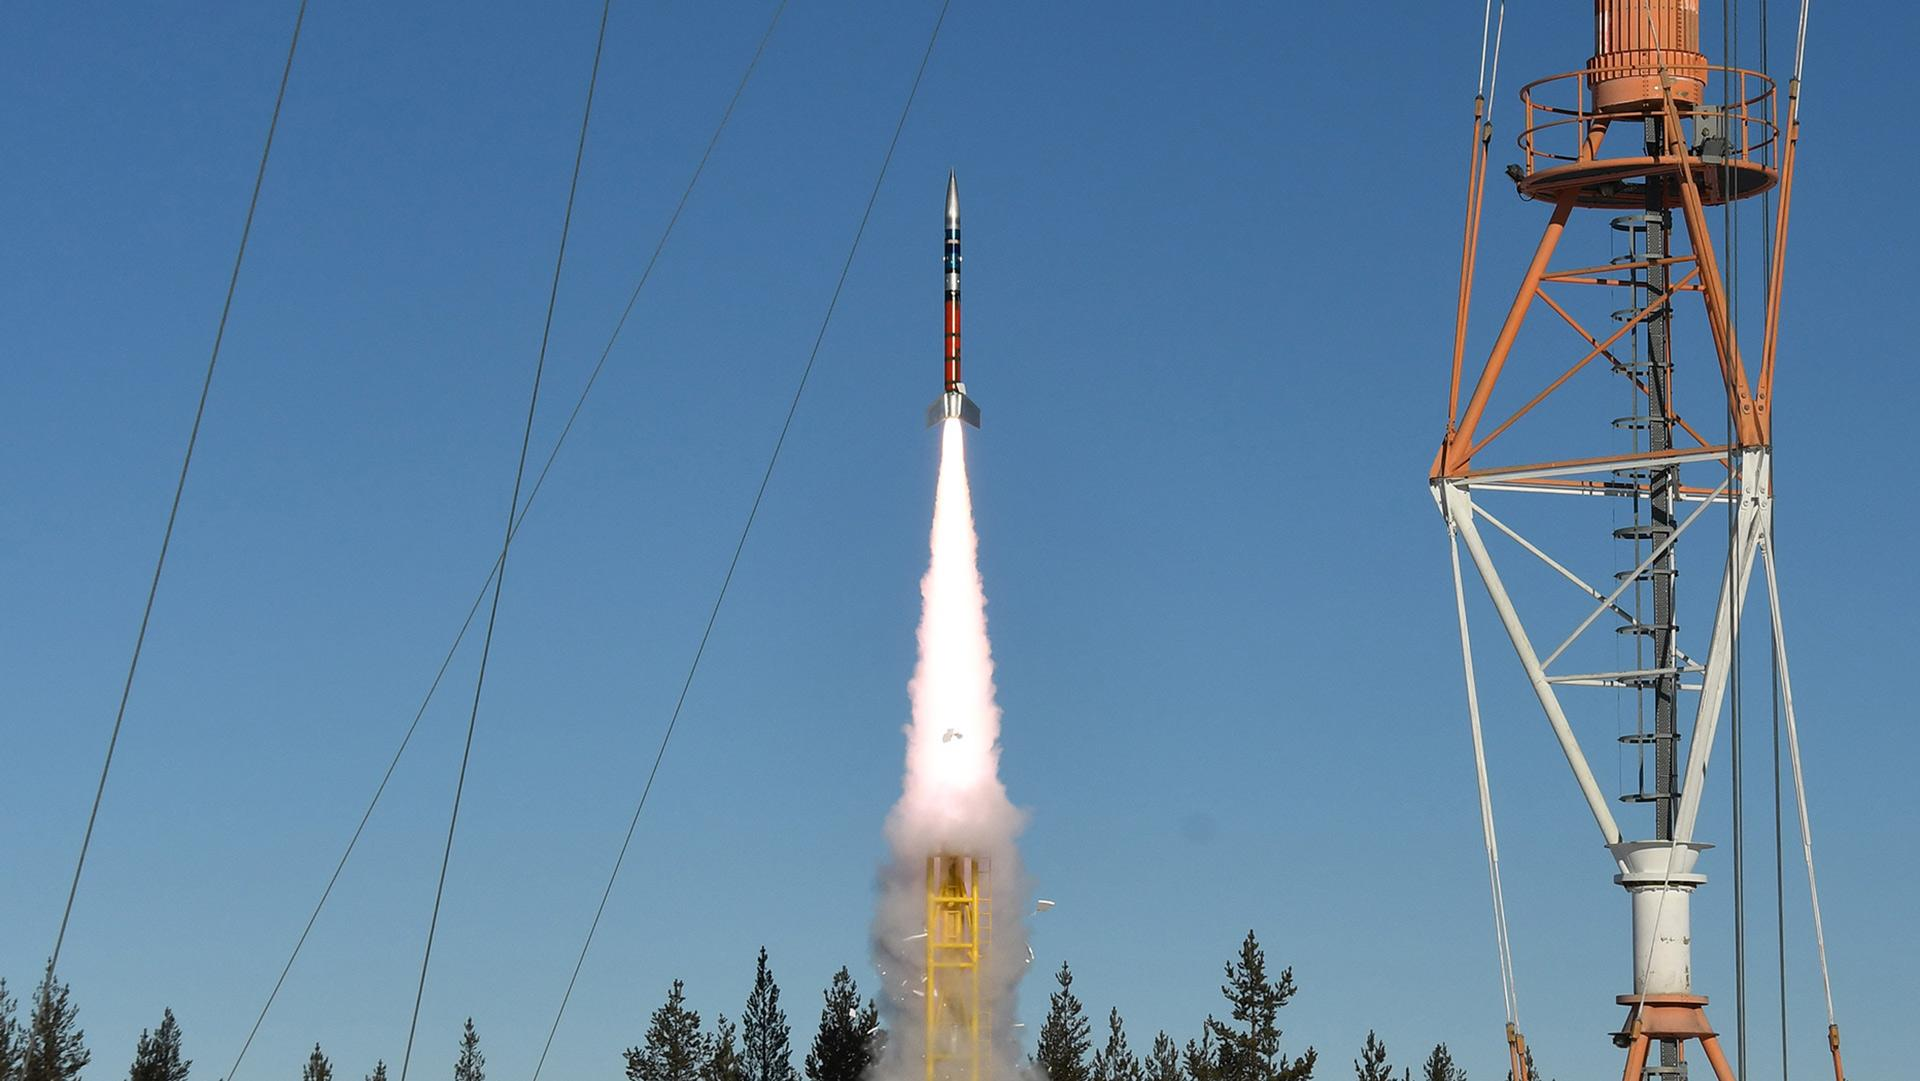 Sounding rockets are launched from the Kiruna rocket range in northern Sweden